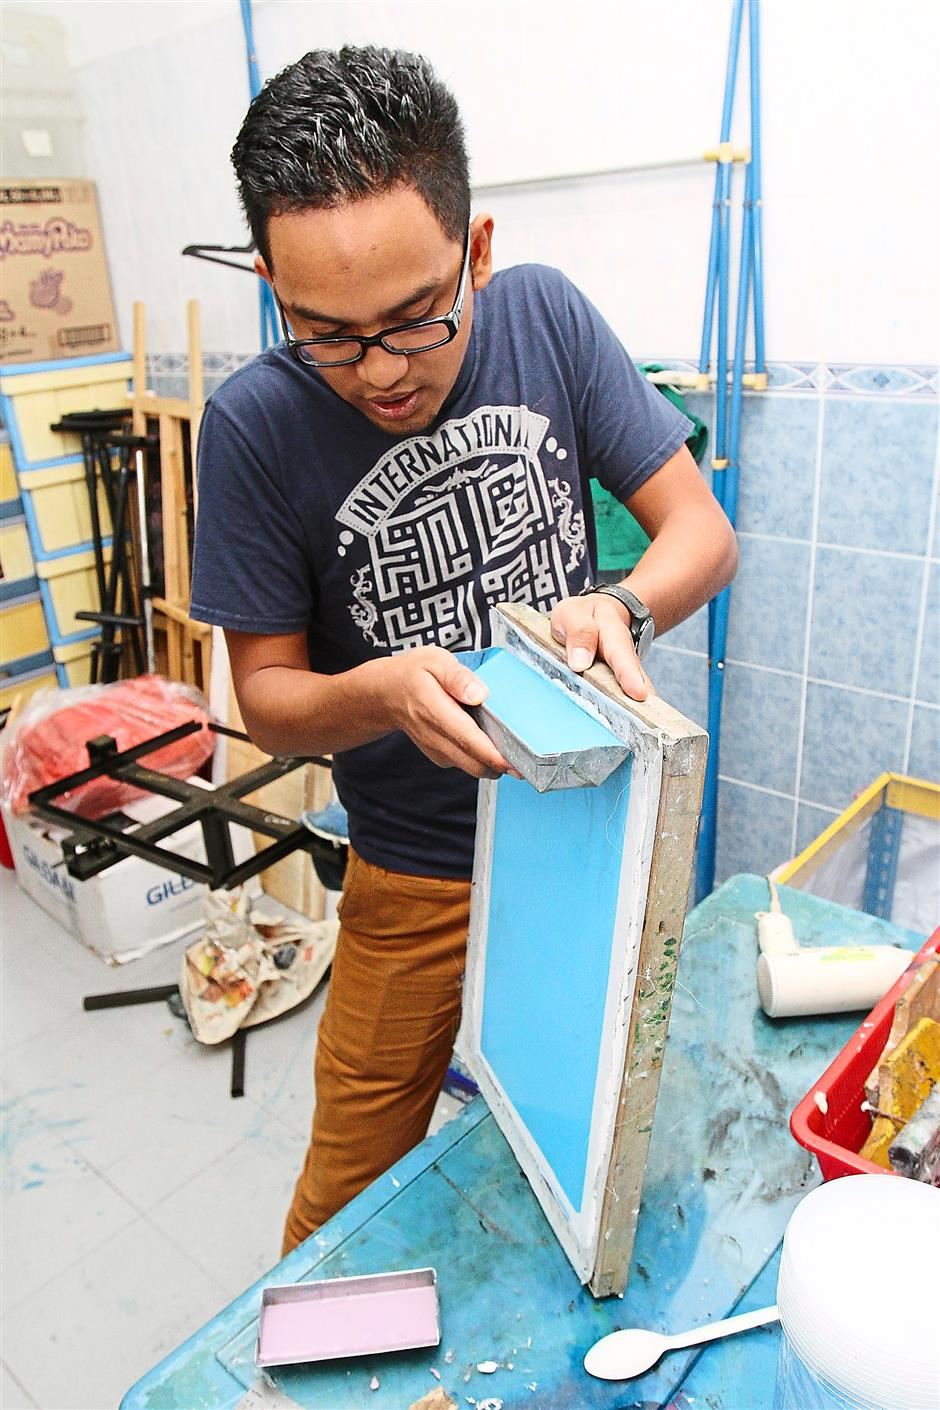 Doing well: Asyraf runs a successful T-shirt printing business from a makeshift bachelor pad.